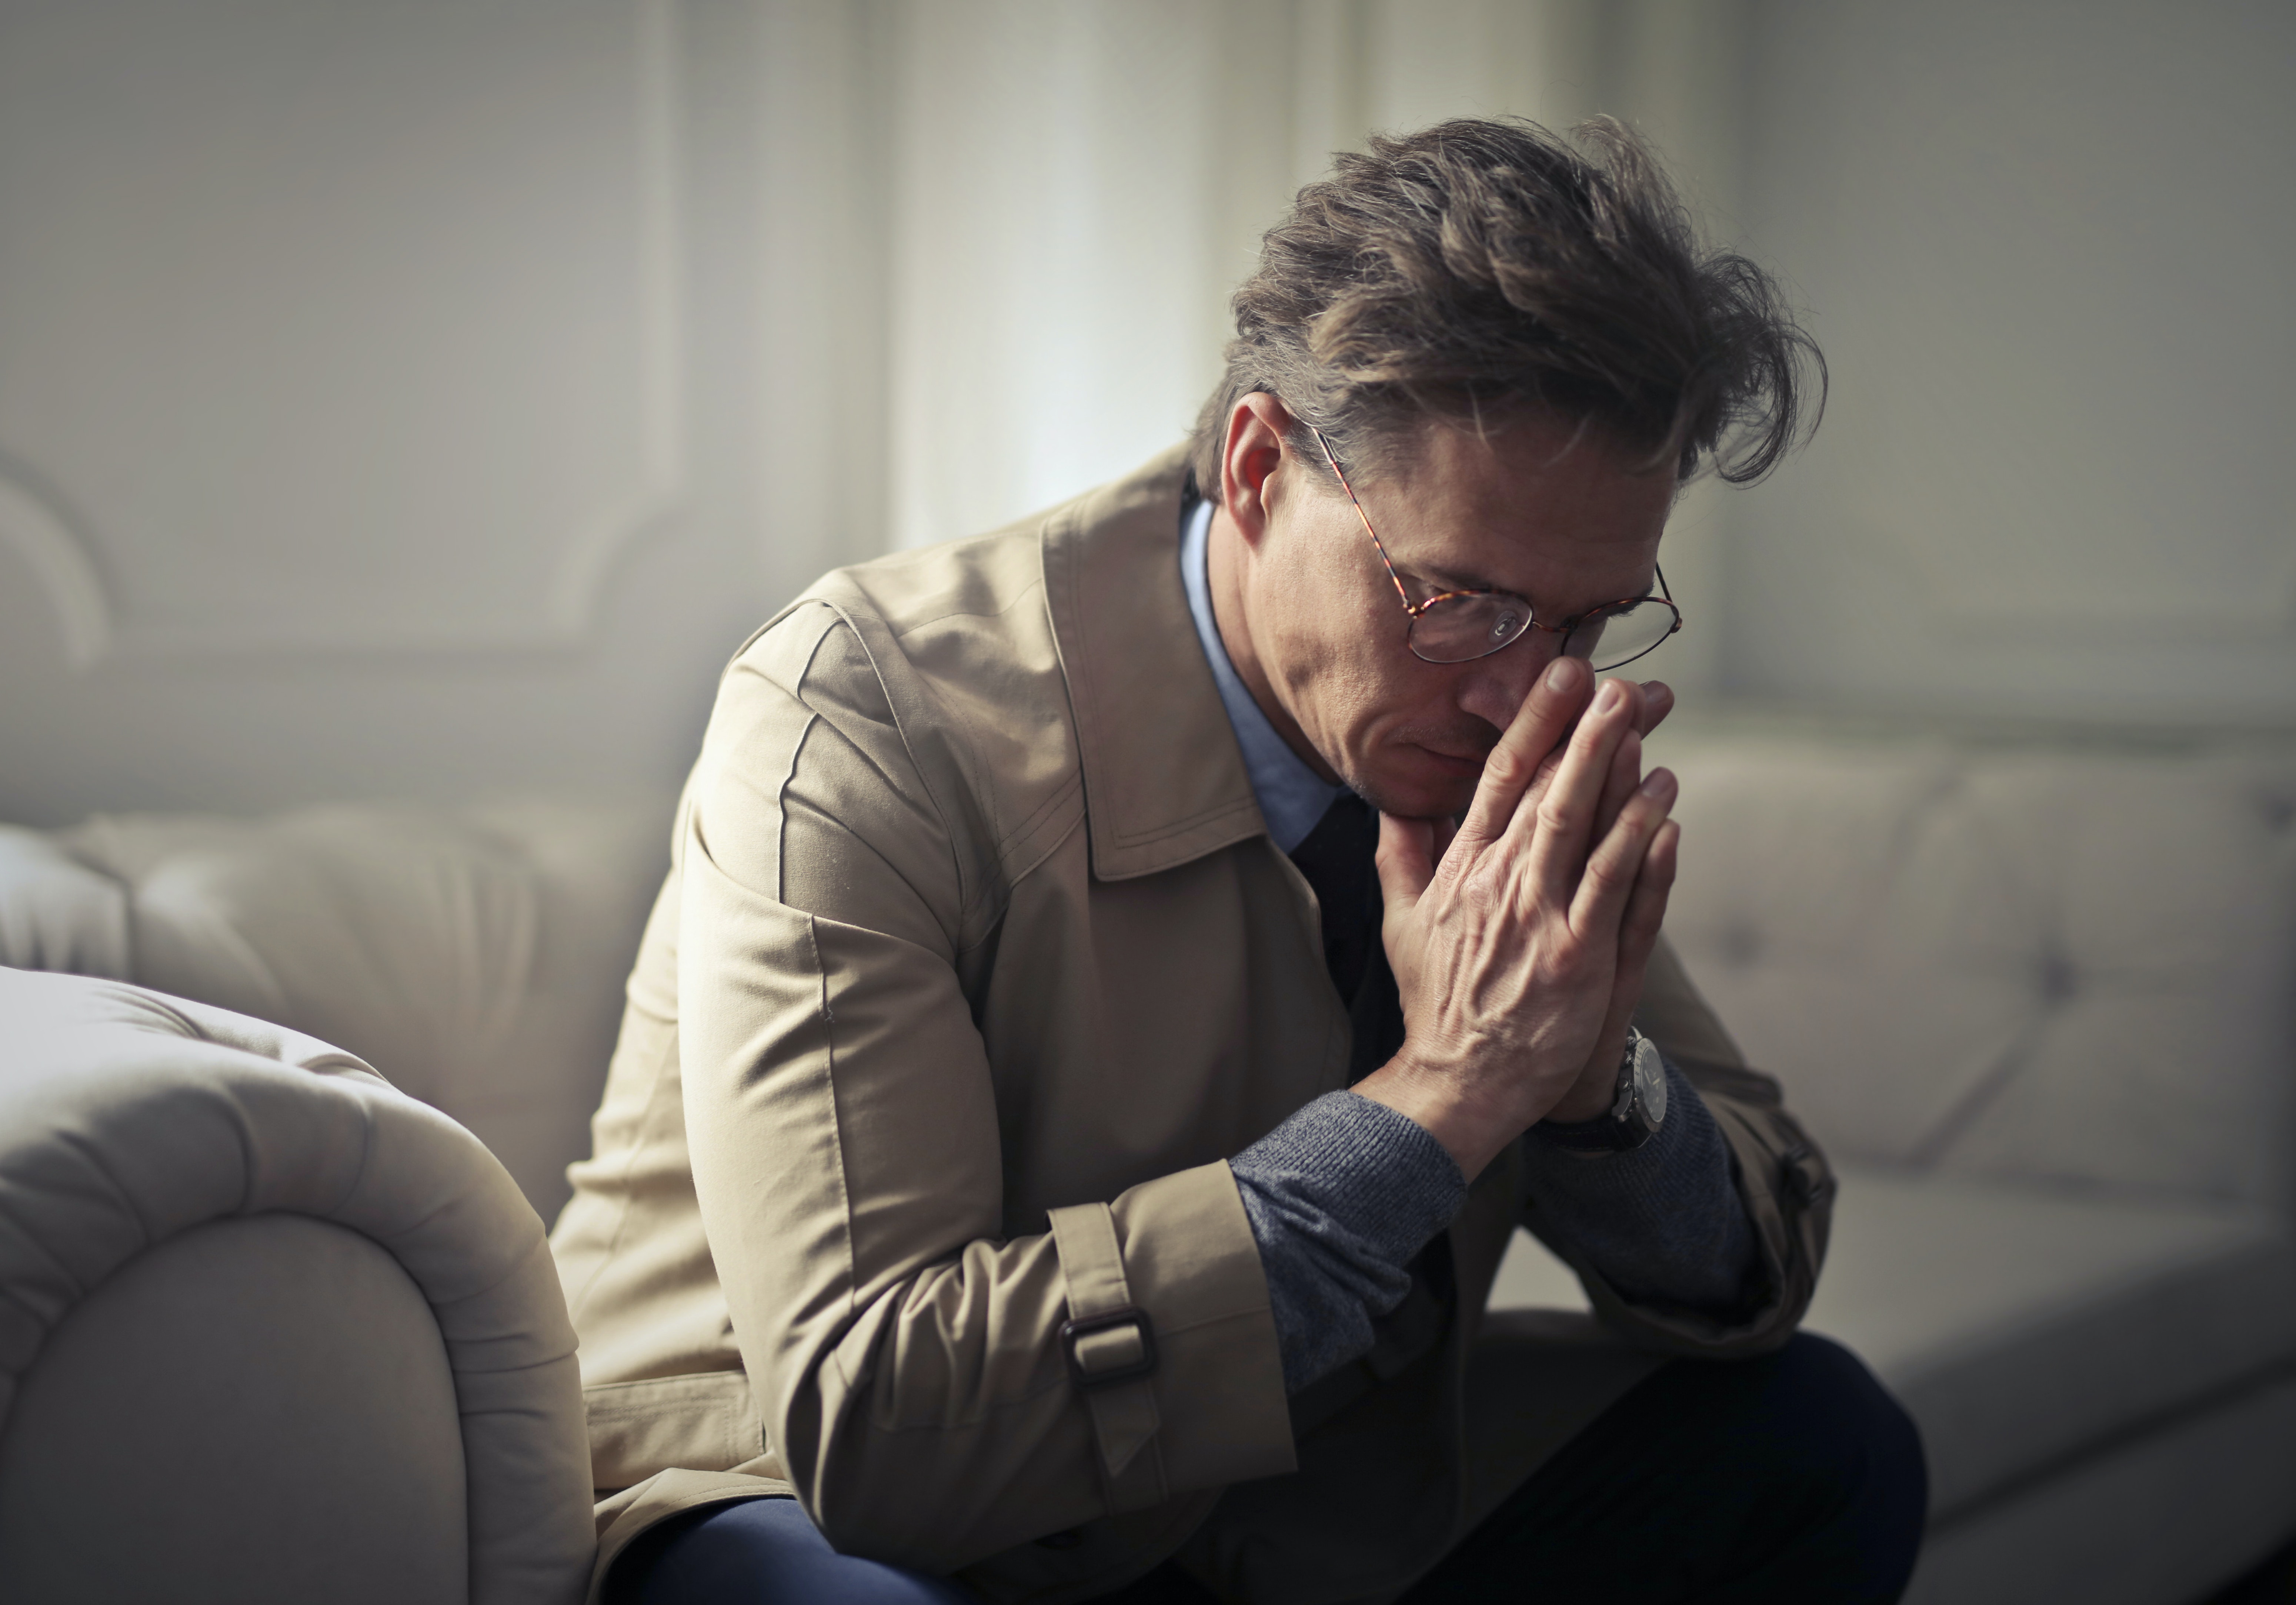 Ask BR: How Can I Have a Loving, Lasting Relationship When I Believe I Will Always Be Let Down?